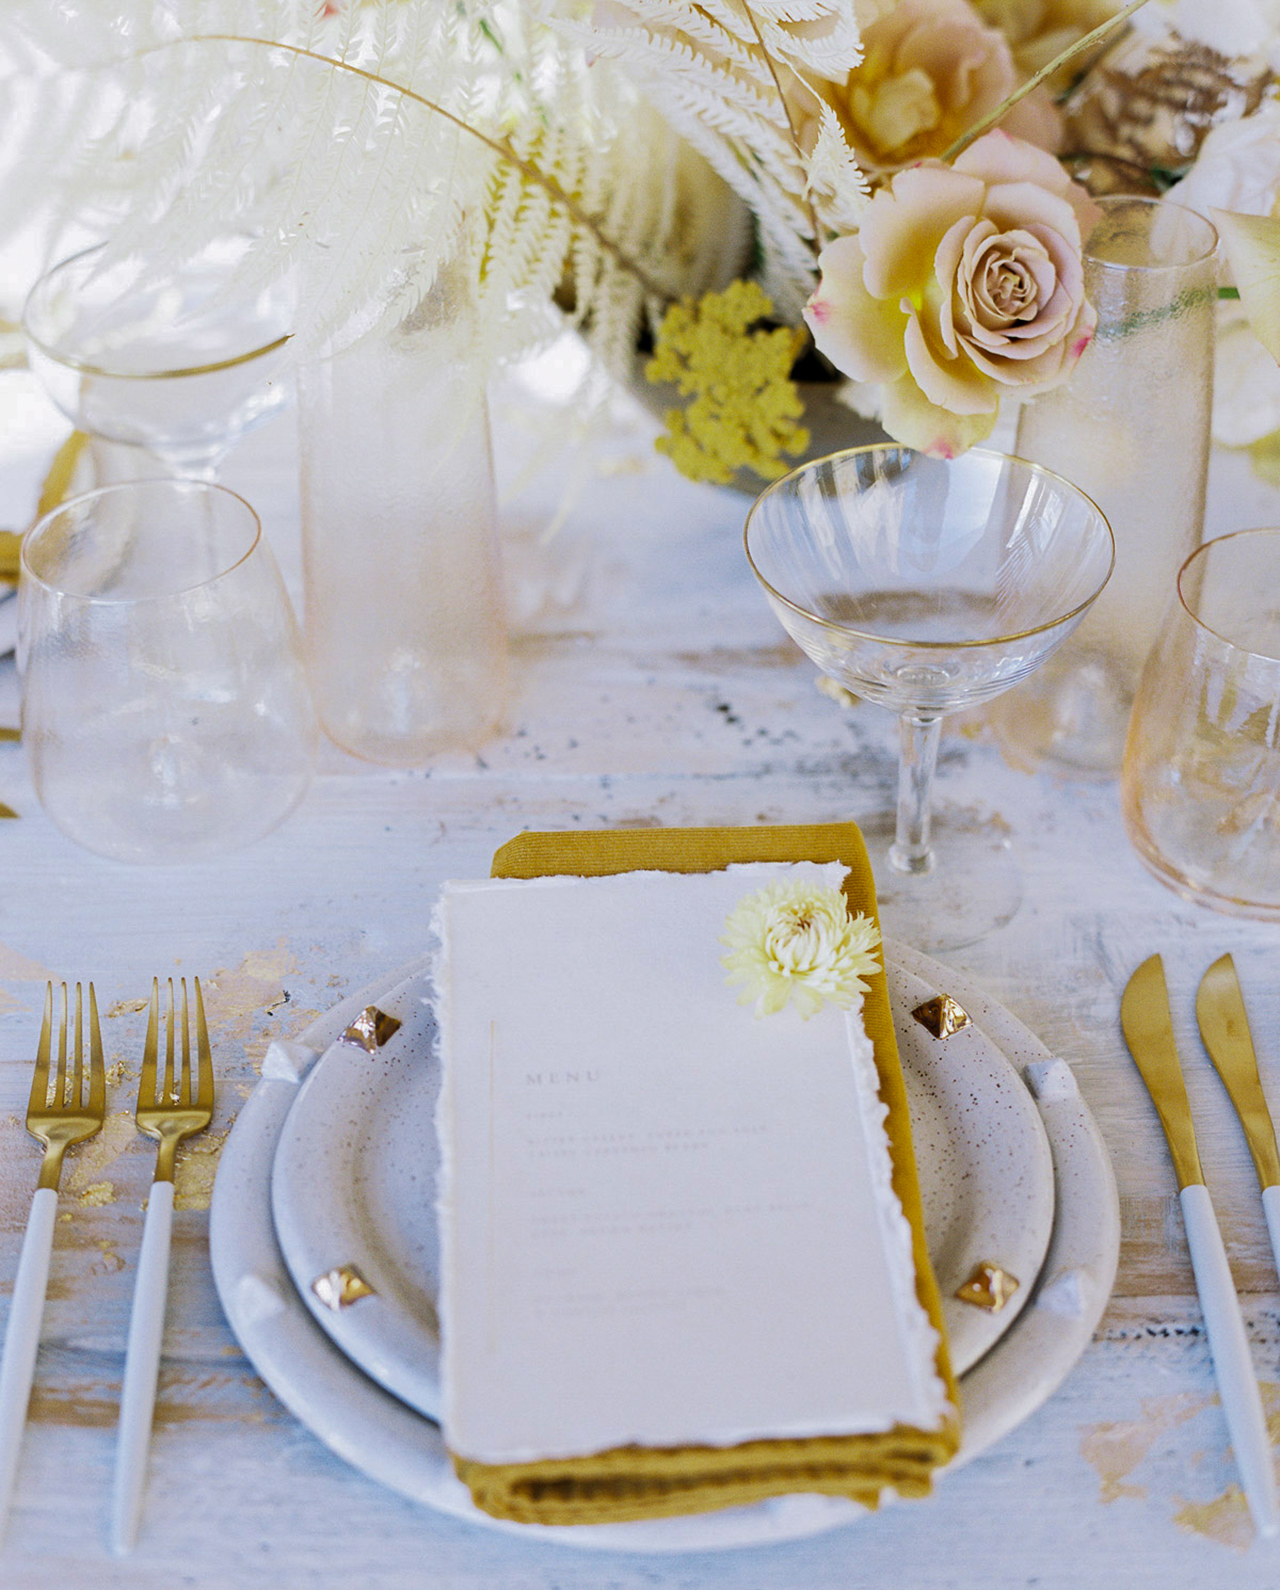 Brass-studded plates mustard linens white-coated gold flatware